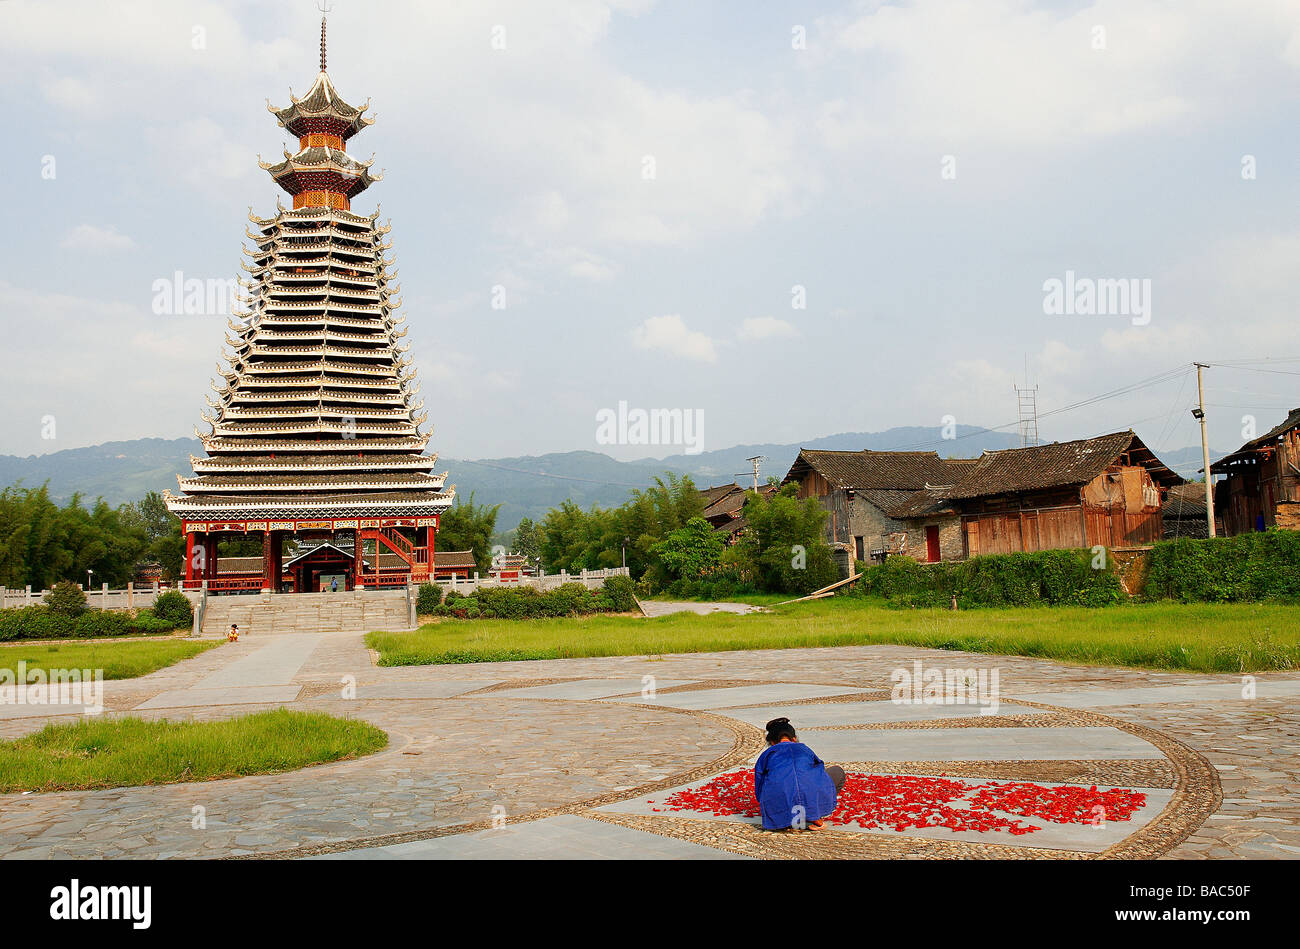 China, Guizhou Province, Rongjiang, woman drying red hot chili pepers, Dong Drum Tower in the background Stock Photo